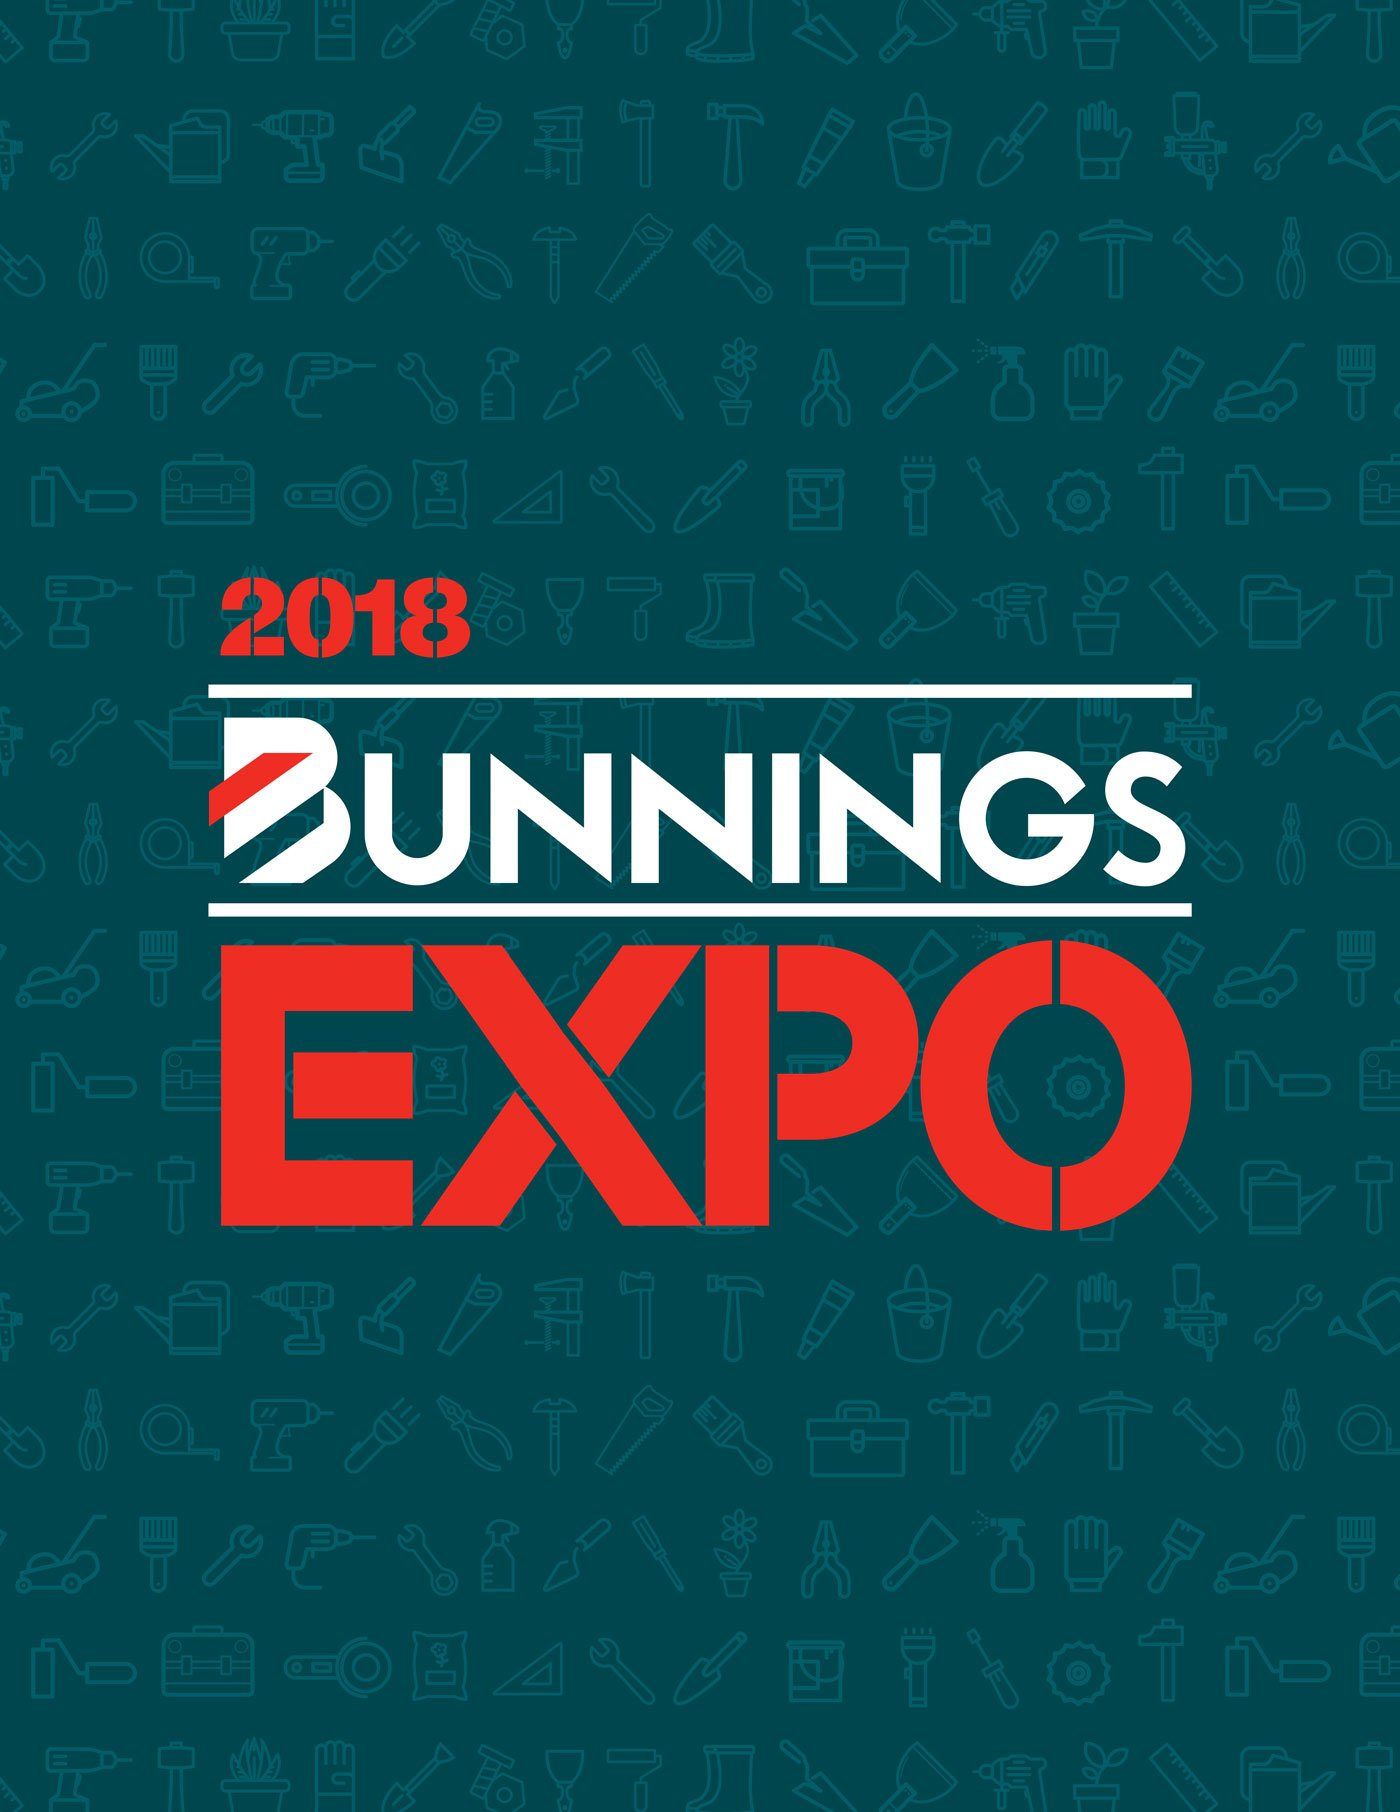 Bunnings Expo brand identity design